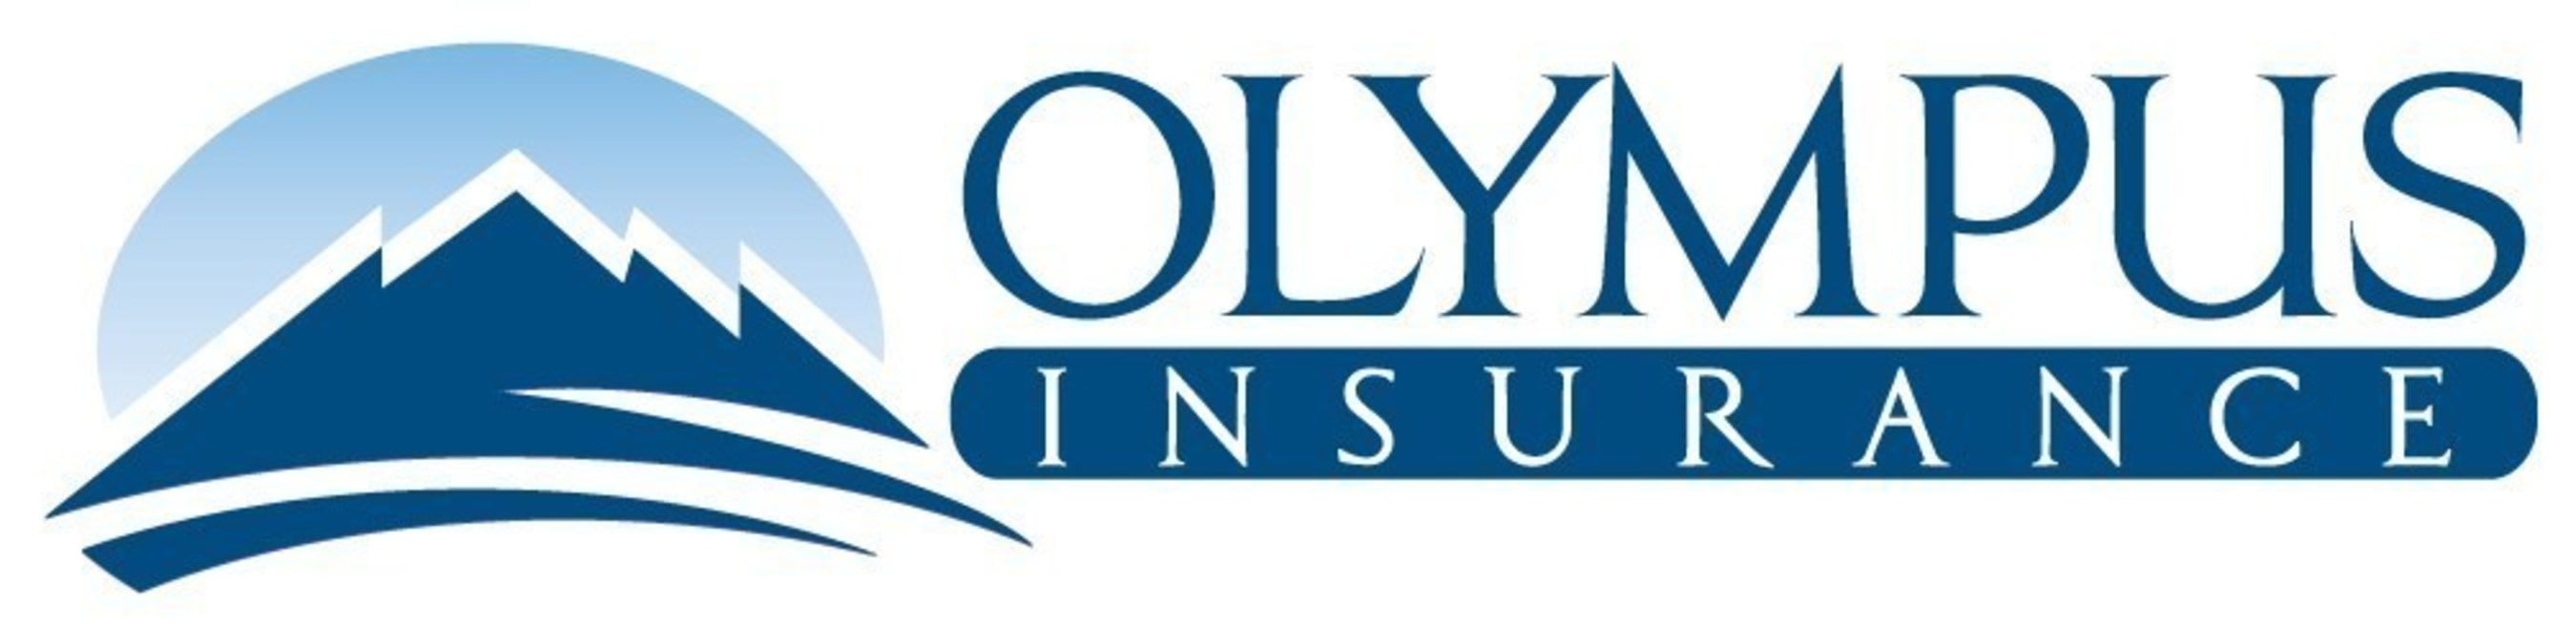 Olympus Insurance Claims